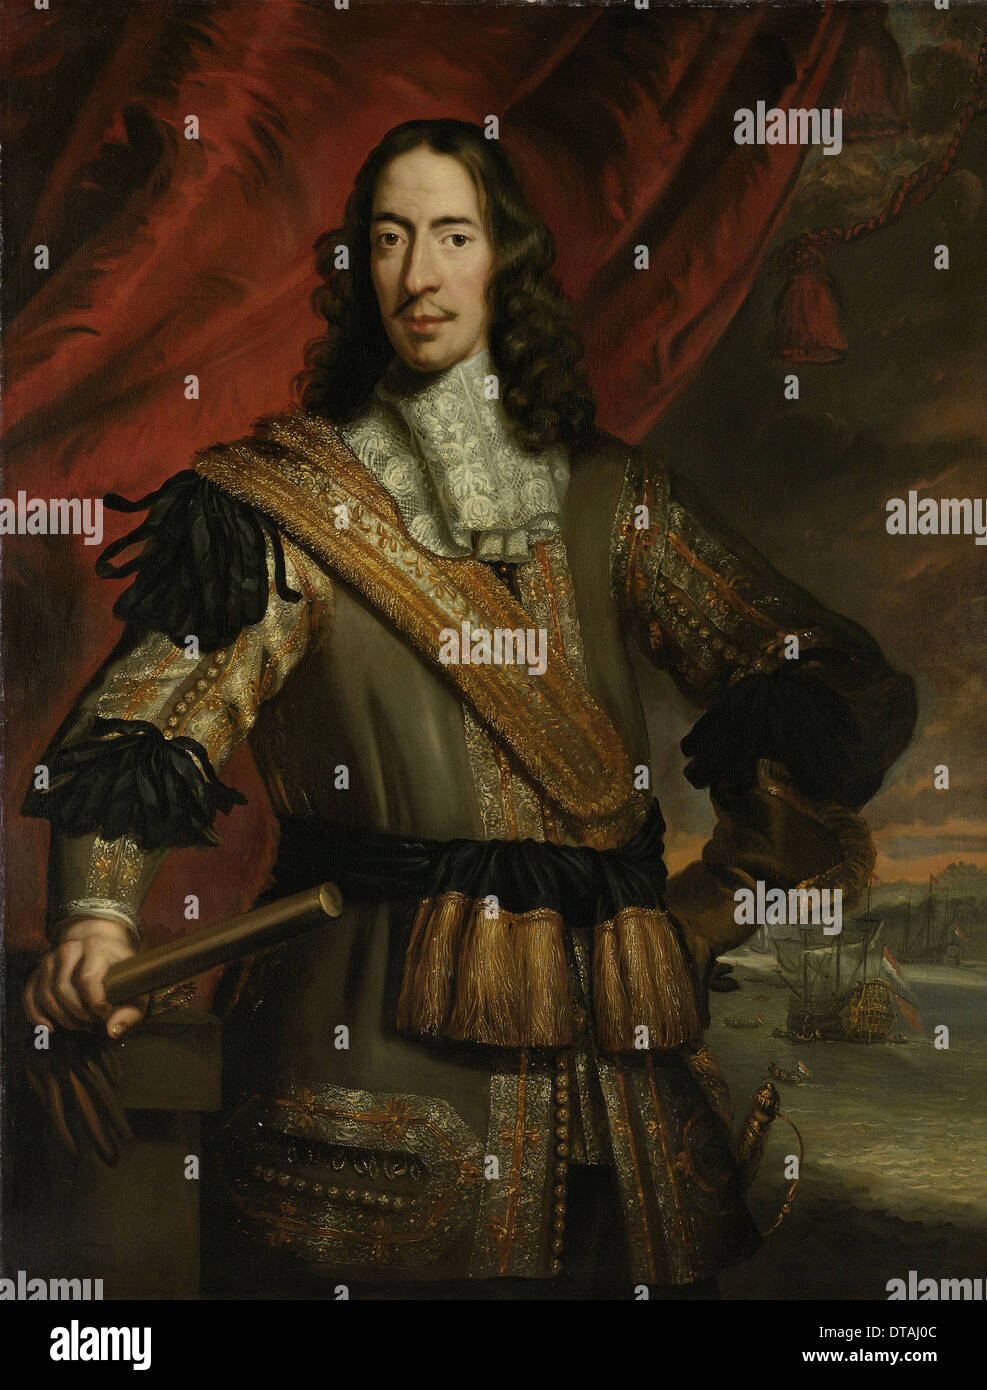 Portrait of Cornelis de Witt (1623-1672), Between 1667 and 1700. Artist: Baen, Jan de (1633-1702) - Stock Image